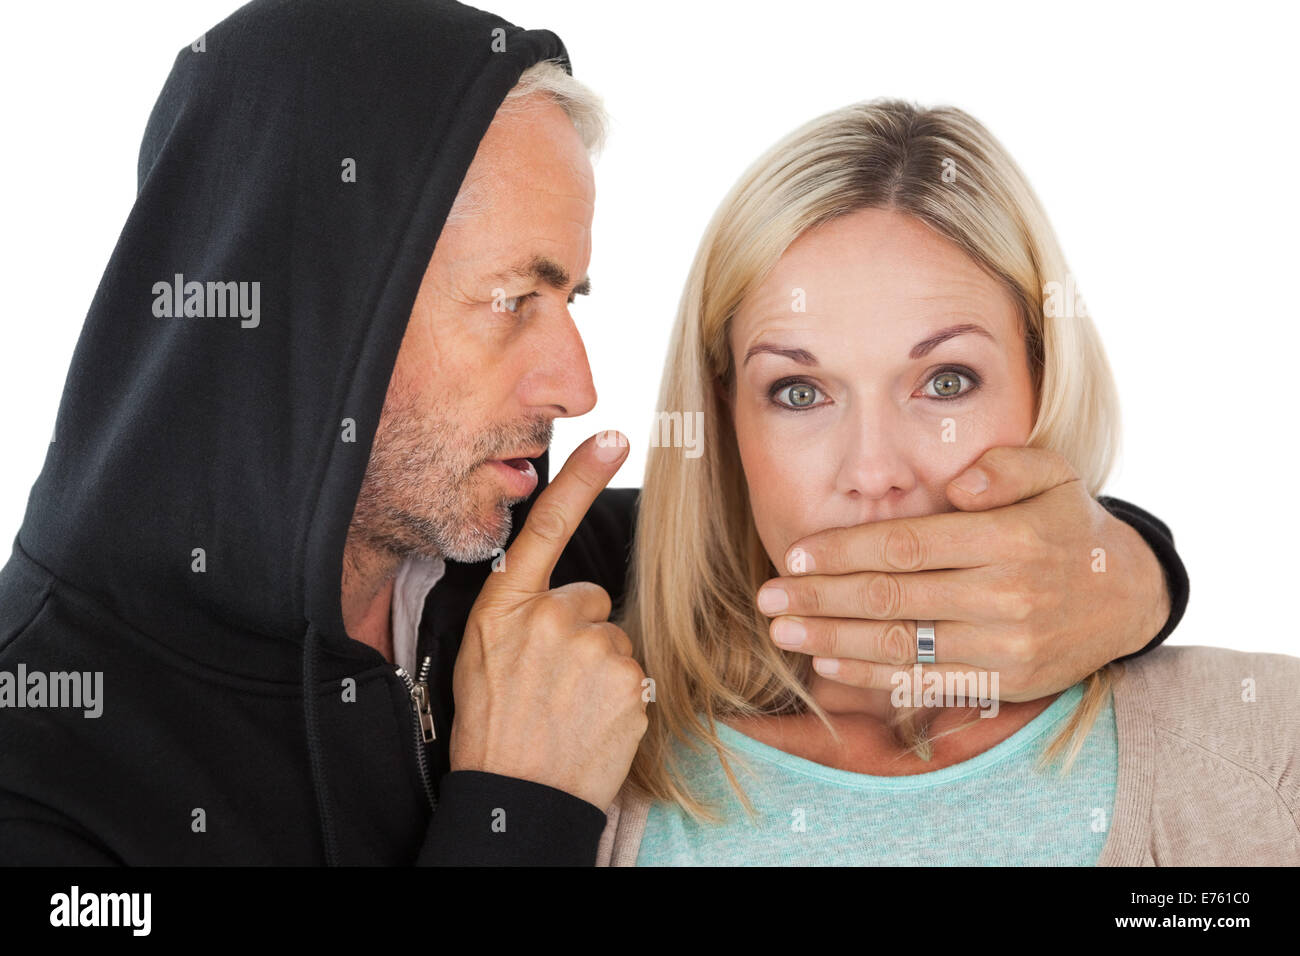 Close up of theft covering woman's mouth - Stock Image